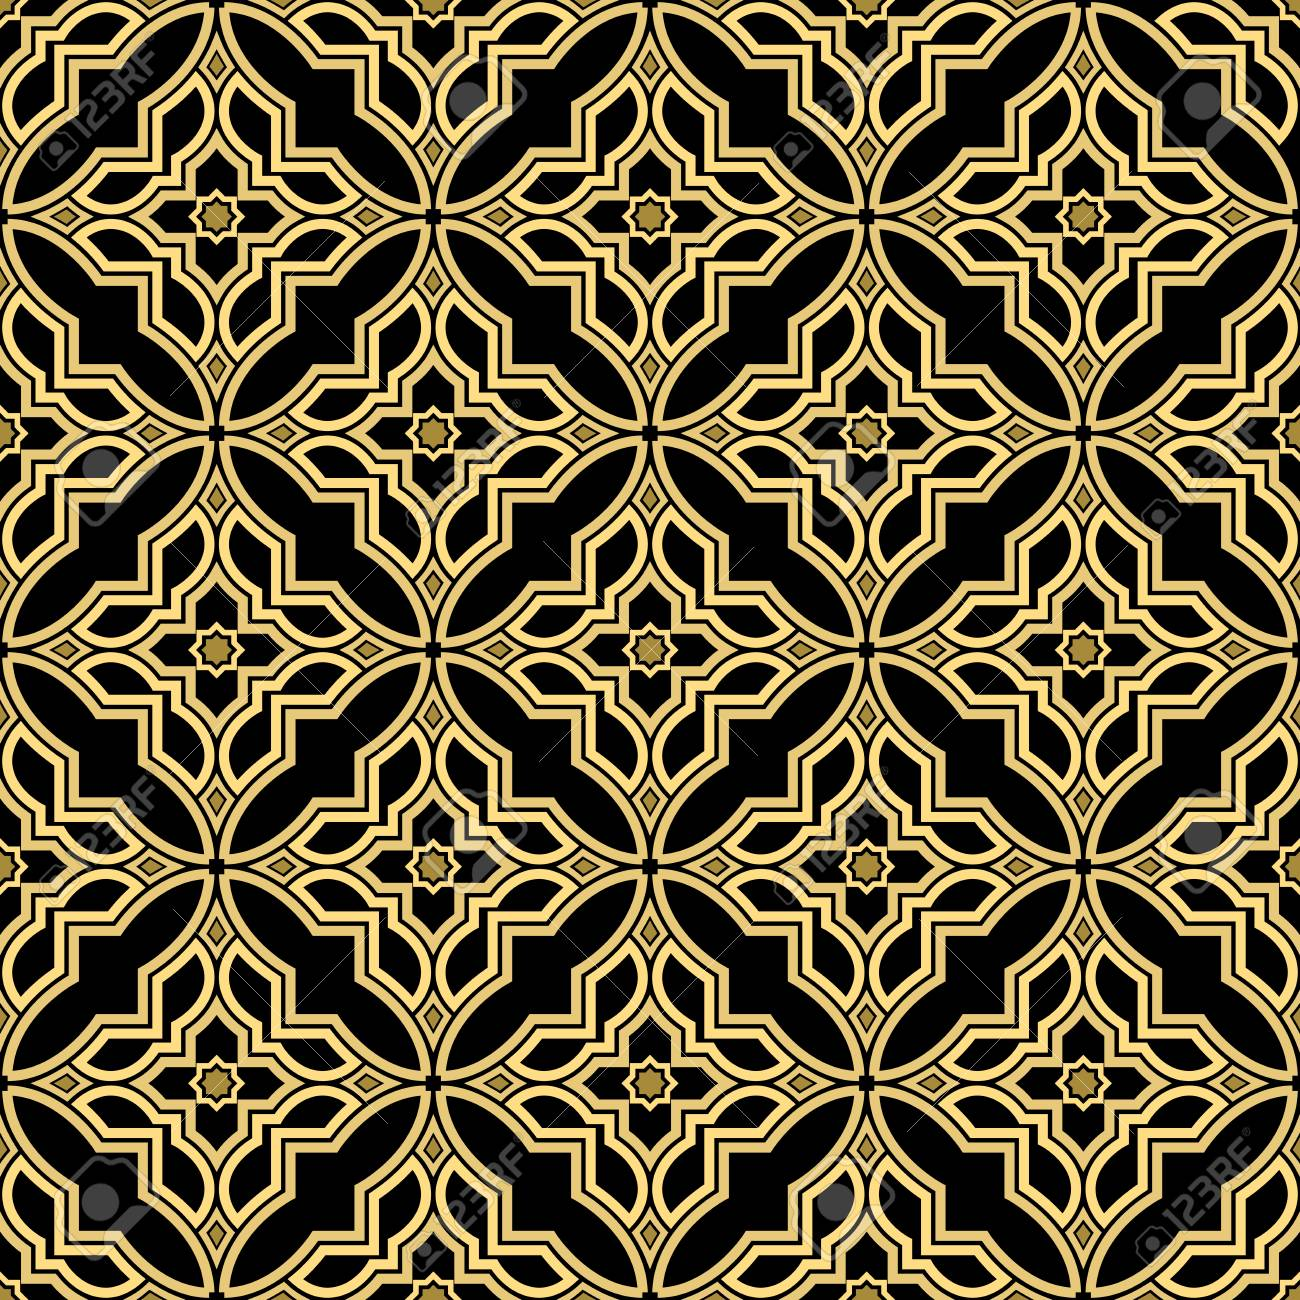 abstract geometry pattern in arabian style seamless vector background royalty free cliparts vectors and stock illustration image 97896750 abstract geometry pattern in arabian style seamless vector background